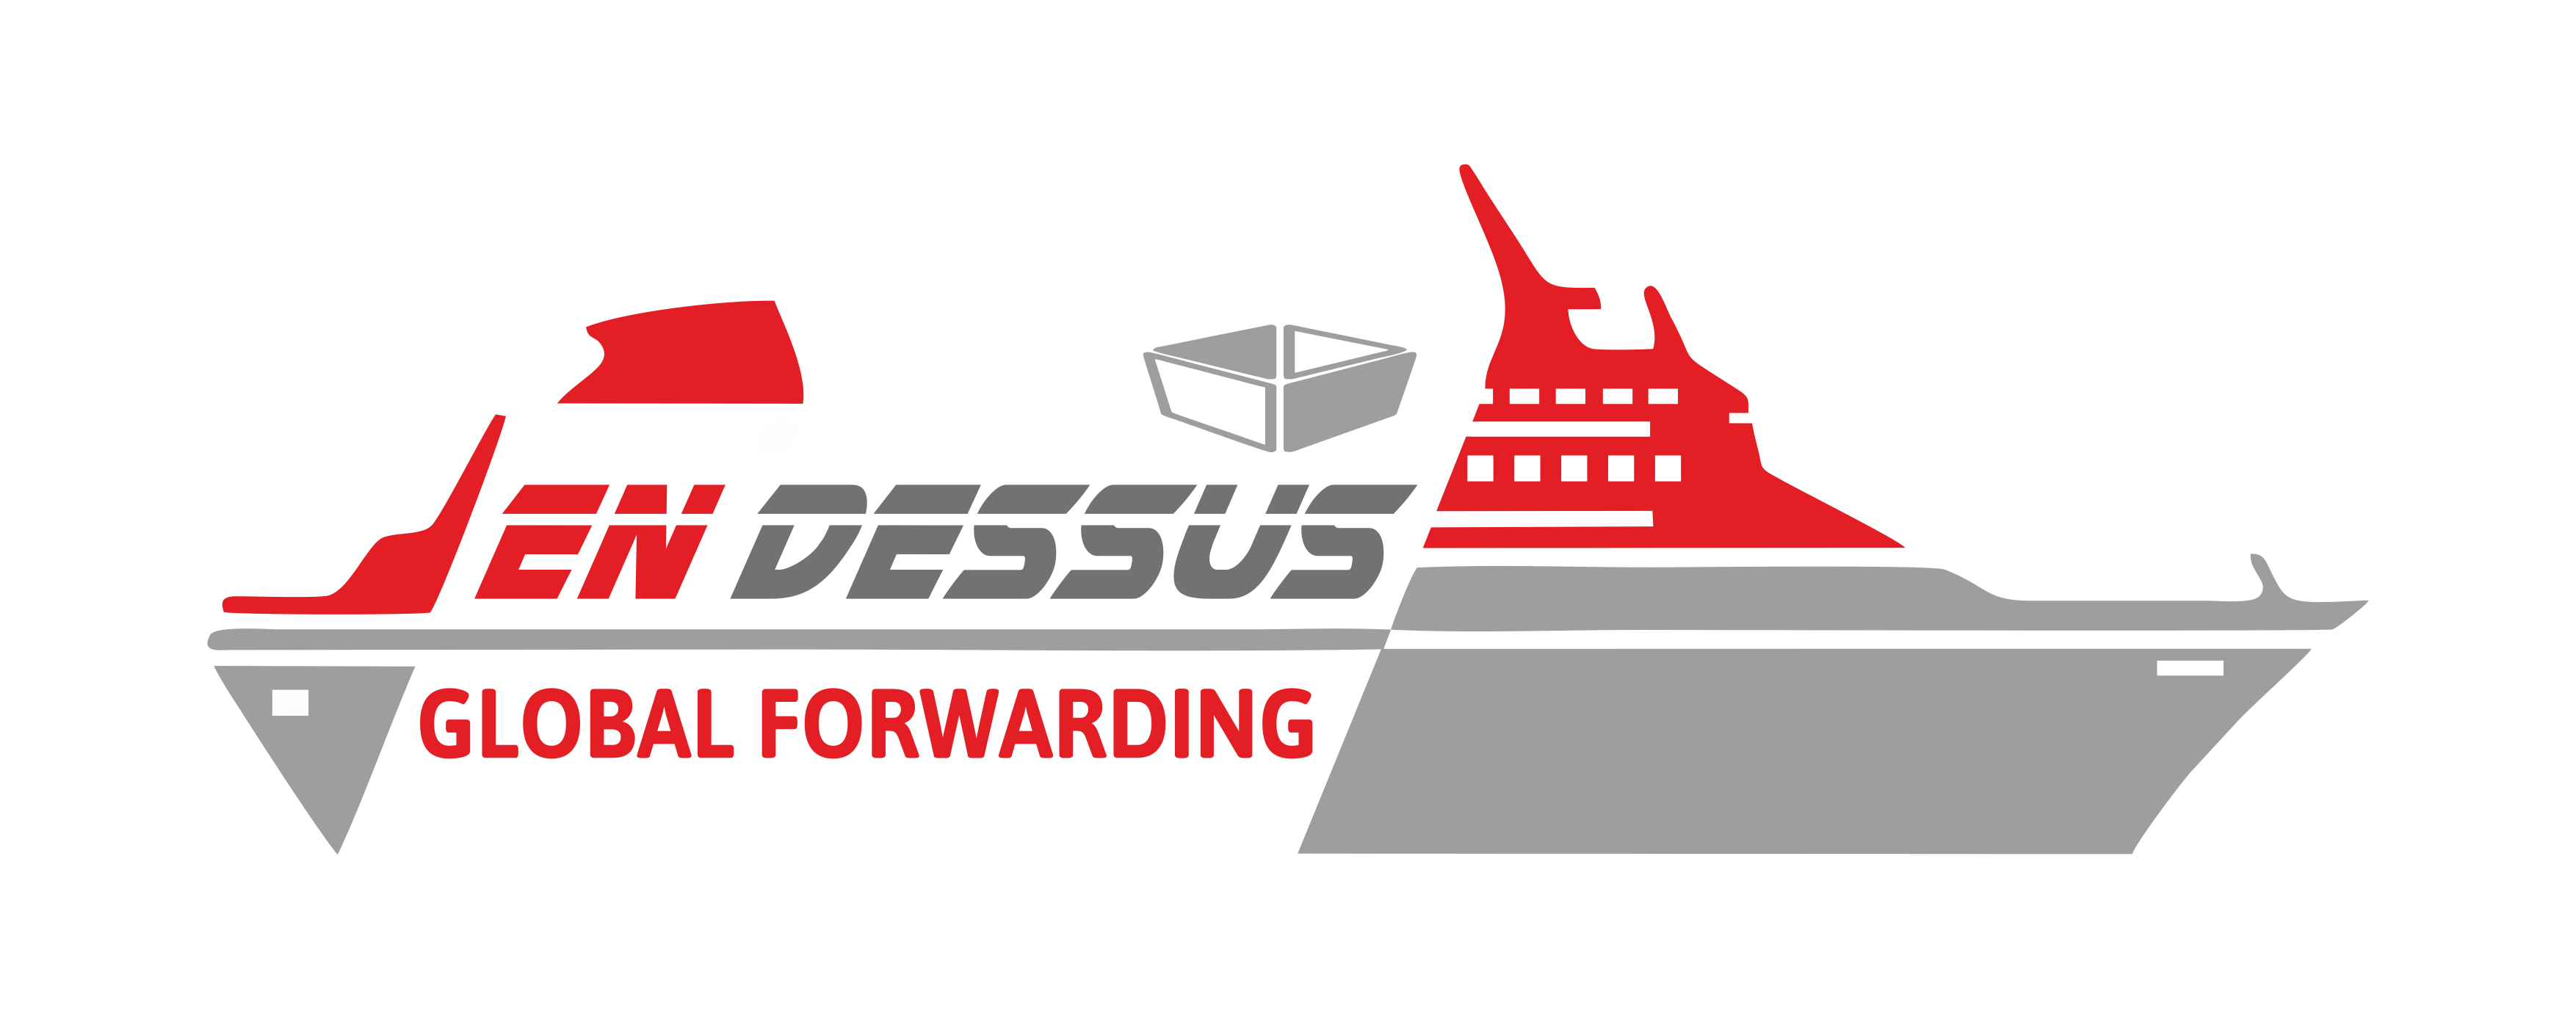 EN DESSUS GLOBAL FORWARDING PVT. LTD.